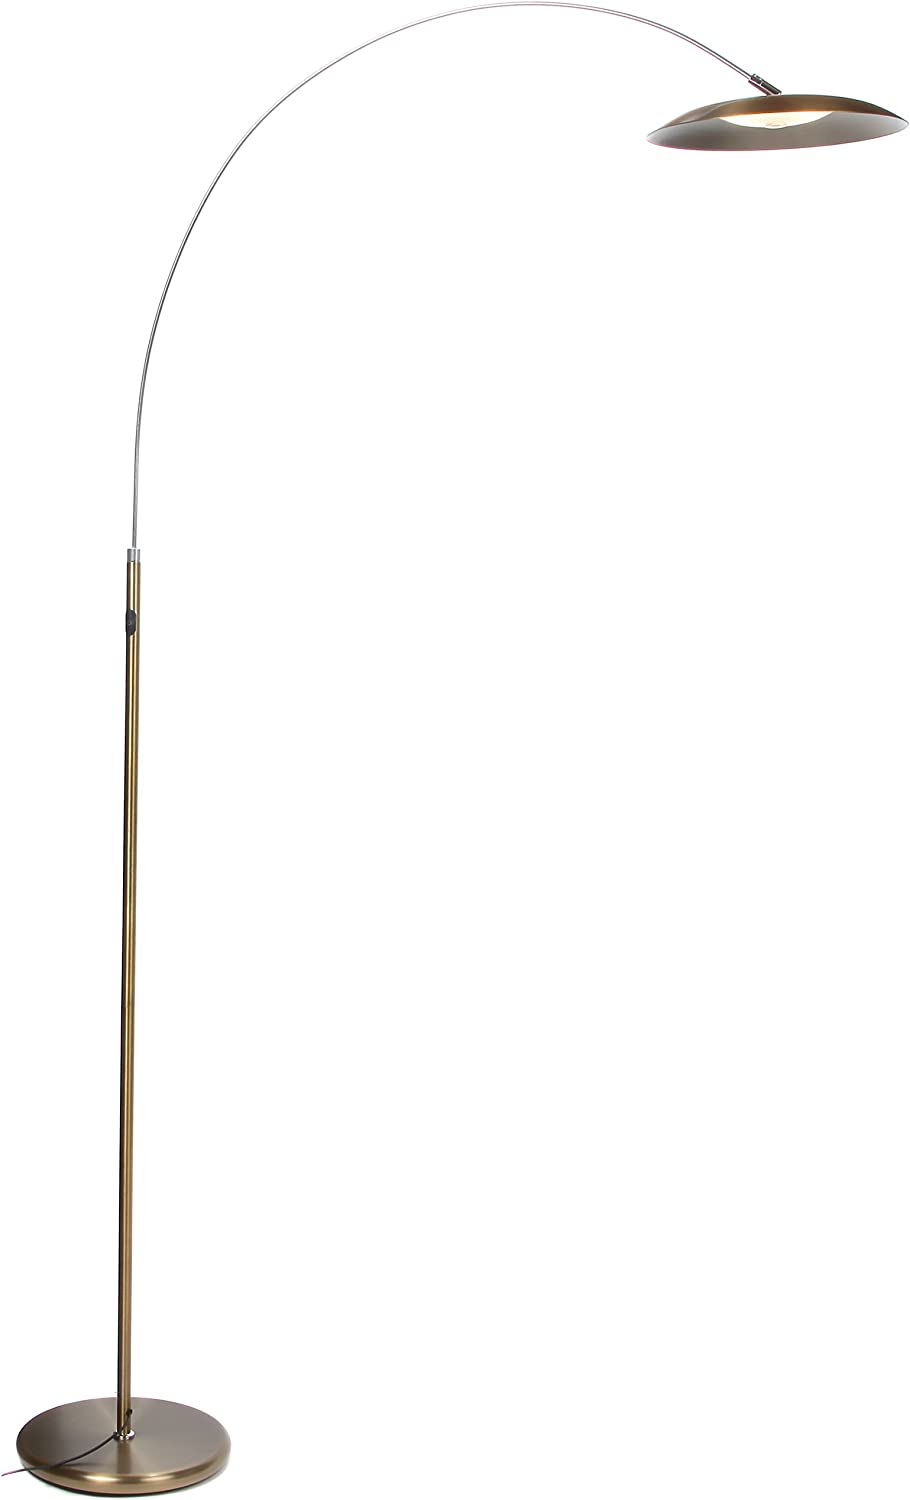 Brightech Atlas LED Floor Lamp- Gold Dimmable Contemporary Modern Curved Arc Lamp- Tall Pole Standing Industrial Lamp with Ambient Lighting for Living Room Bedroom Office Dorm Antique Brass